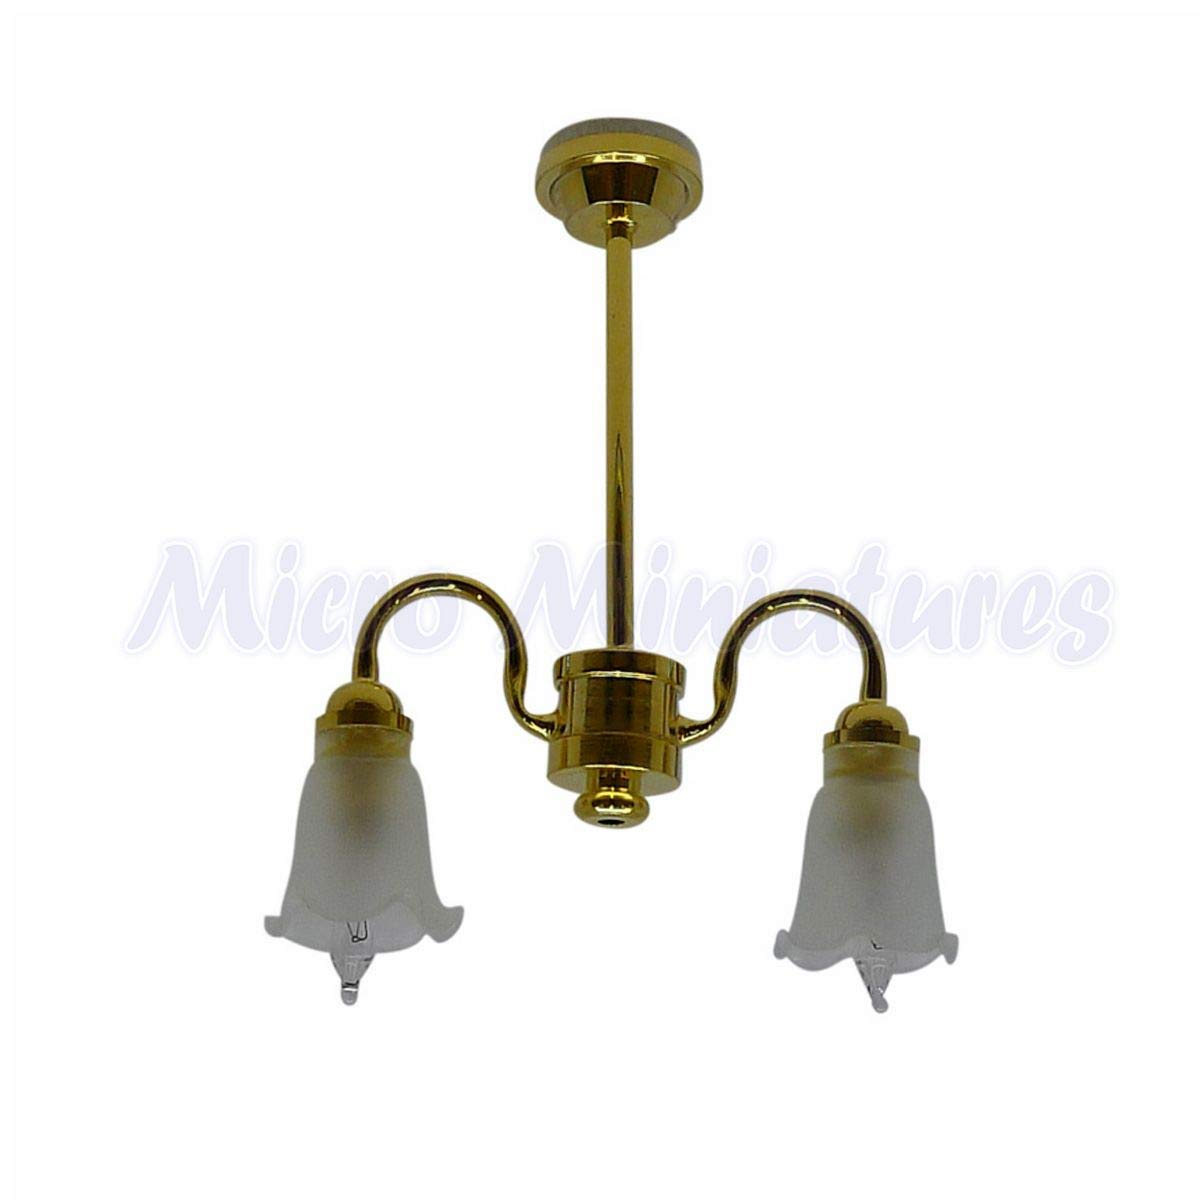 1:12 Scale 12 volt 3 Light Down Frosted Tulip Chandelier